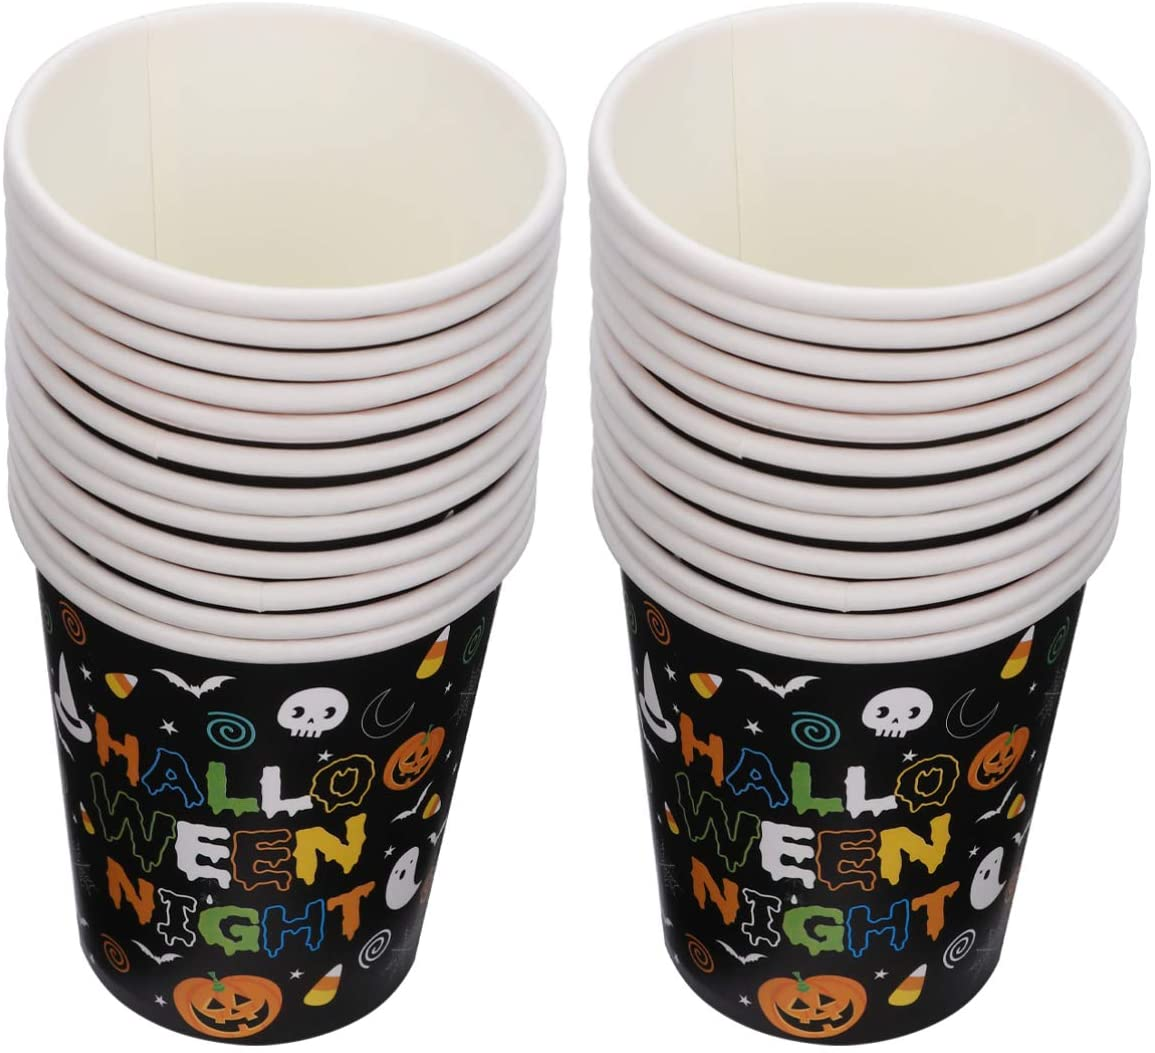 NUOBESTY 2 Set 48 Pcs Pumpkin Witch Pattern Halloween Themed Disposable Party Cups Included 48pcs Disposable Cups for Hallowen Party Supplies